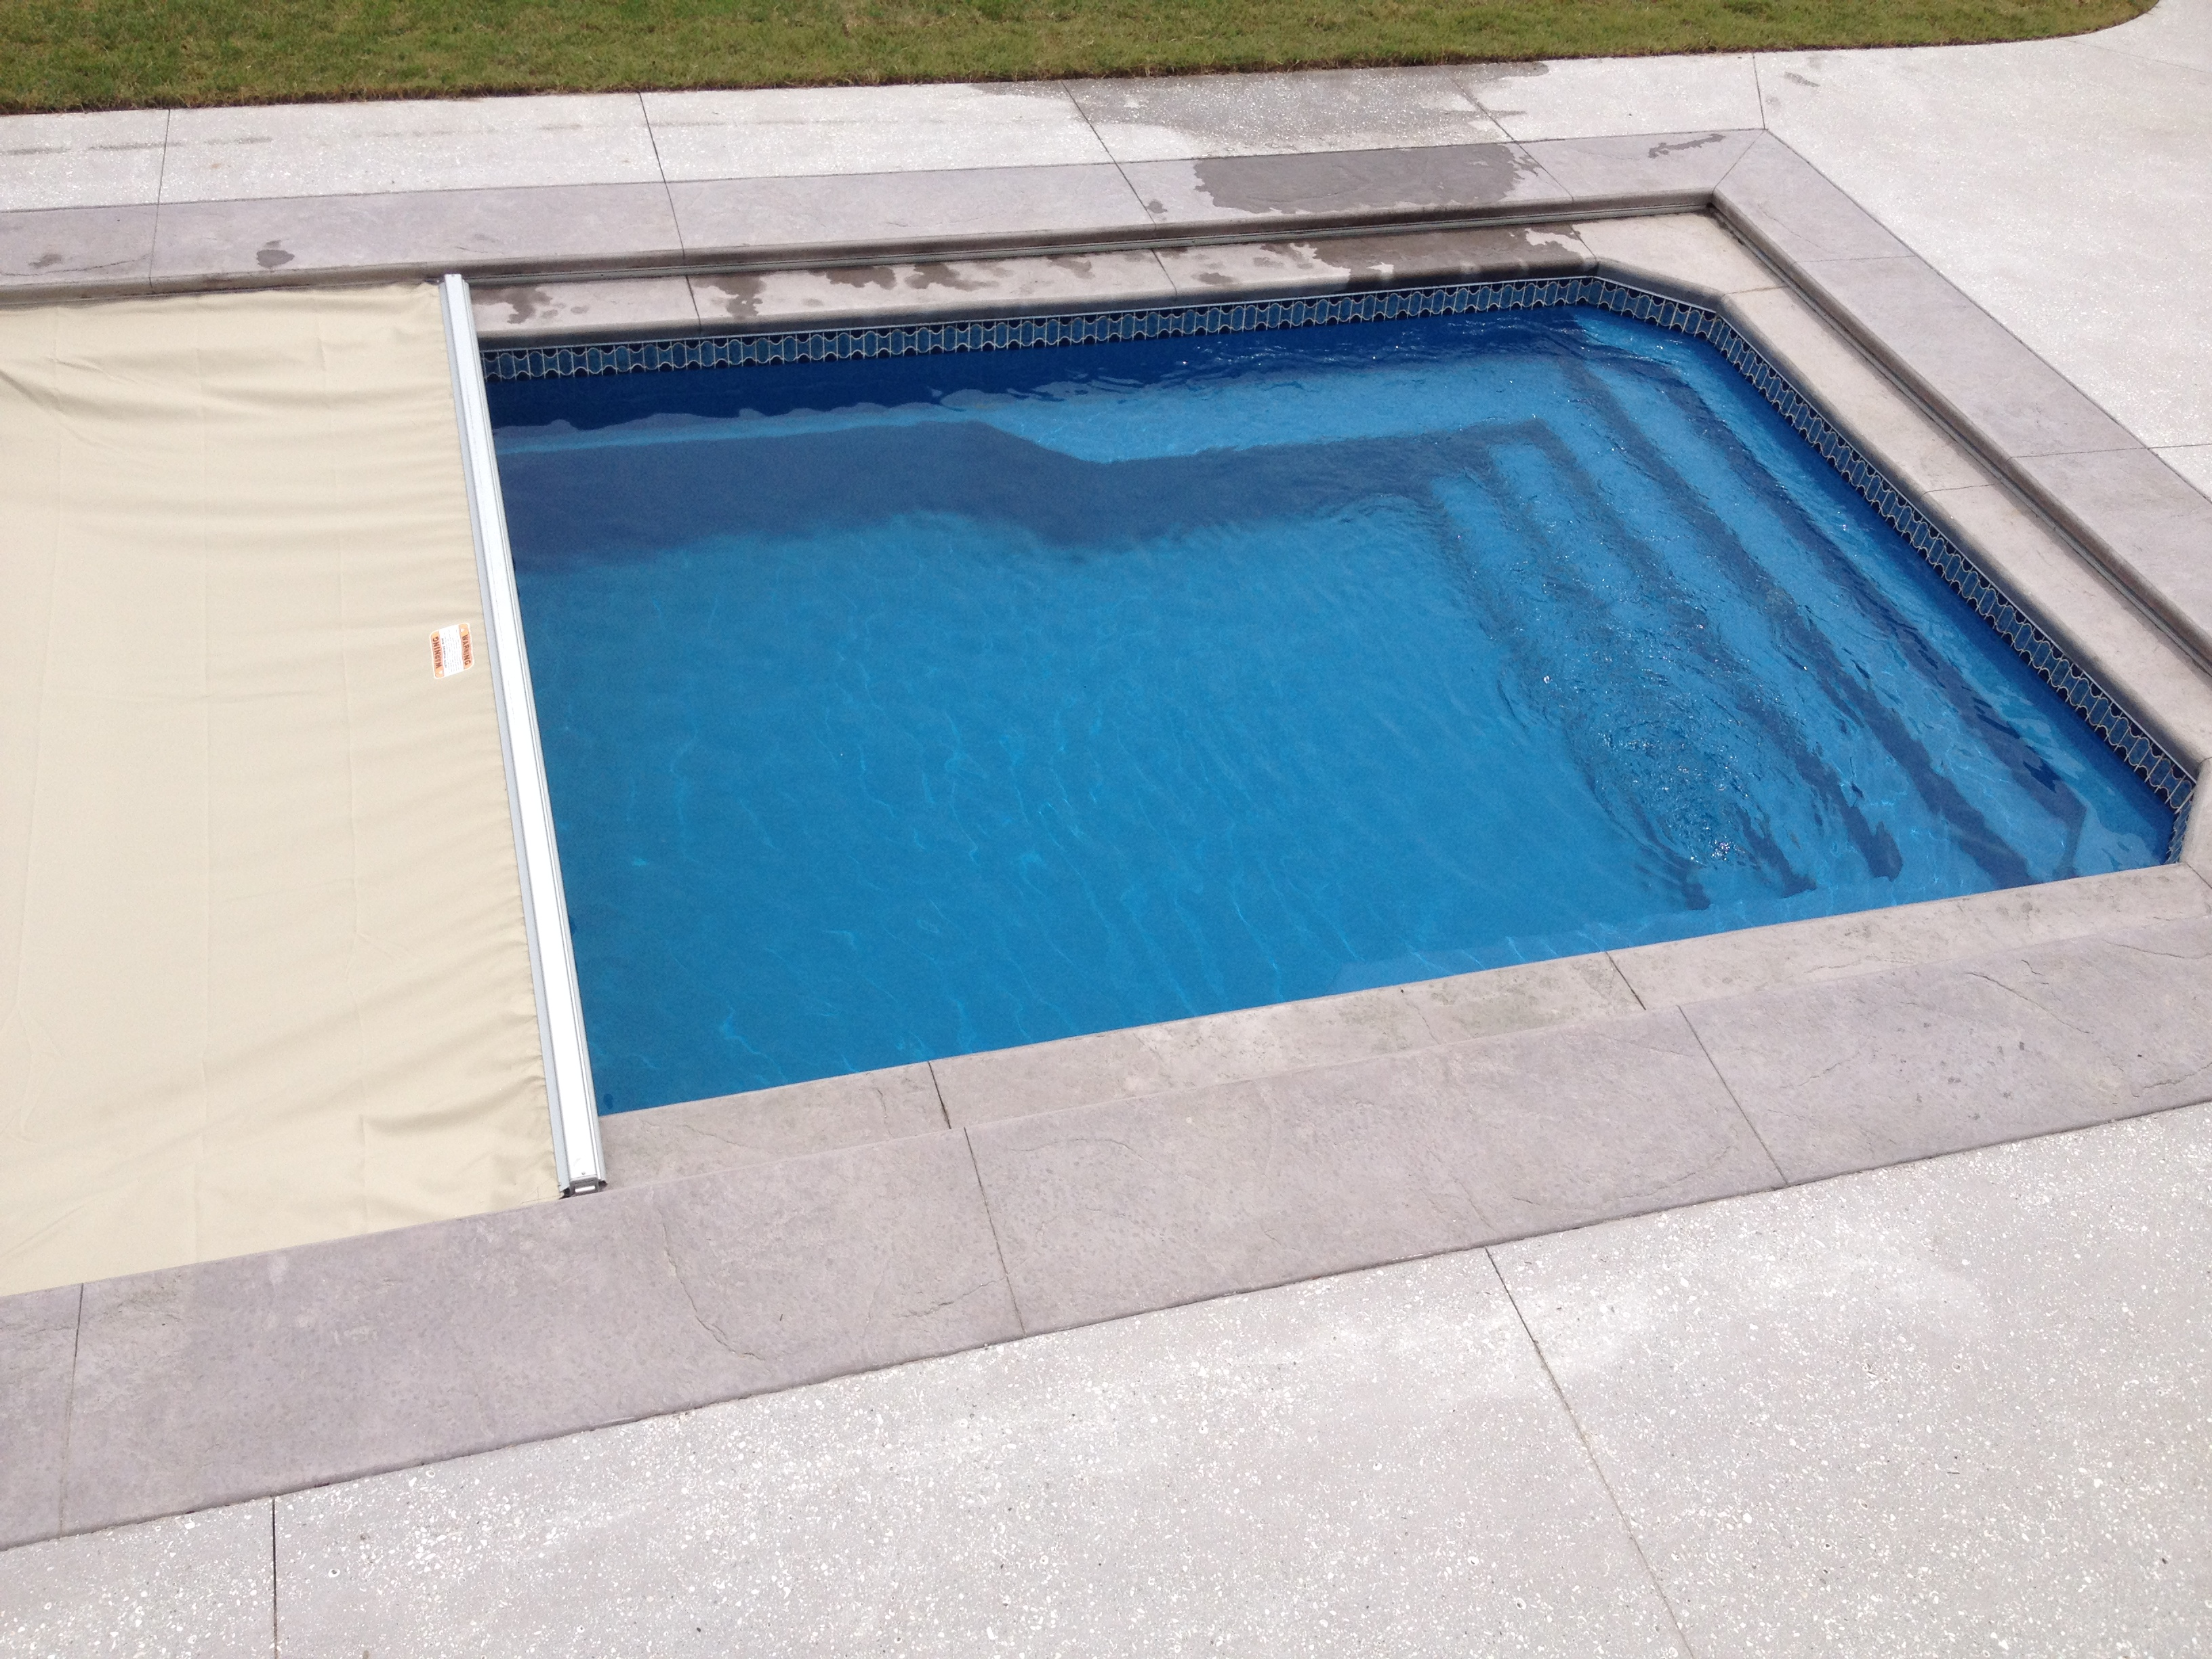 Simple Inground Pool Designs clean lines seemless coping and deck minimalist swimming pool modern pool z freedman landscape design Fiberglass Of Pool With Cover